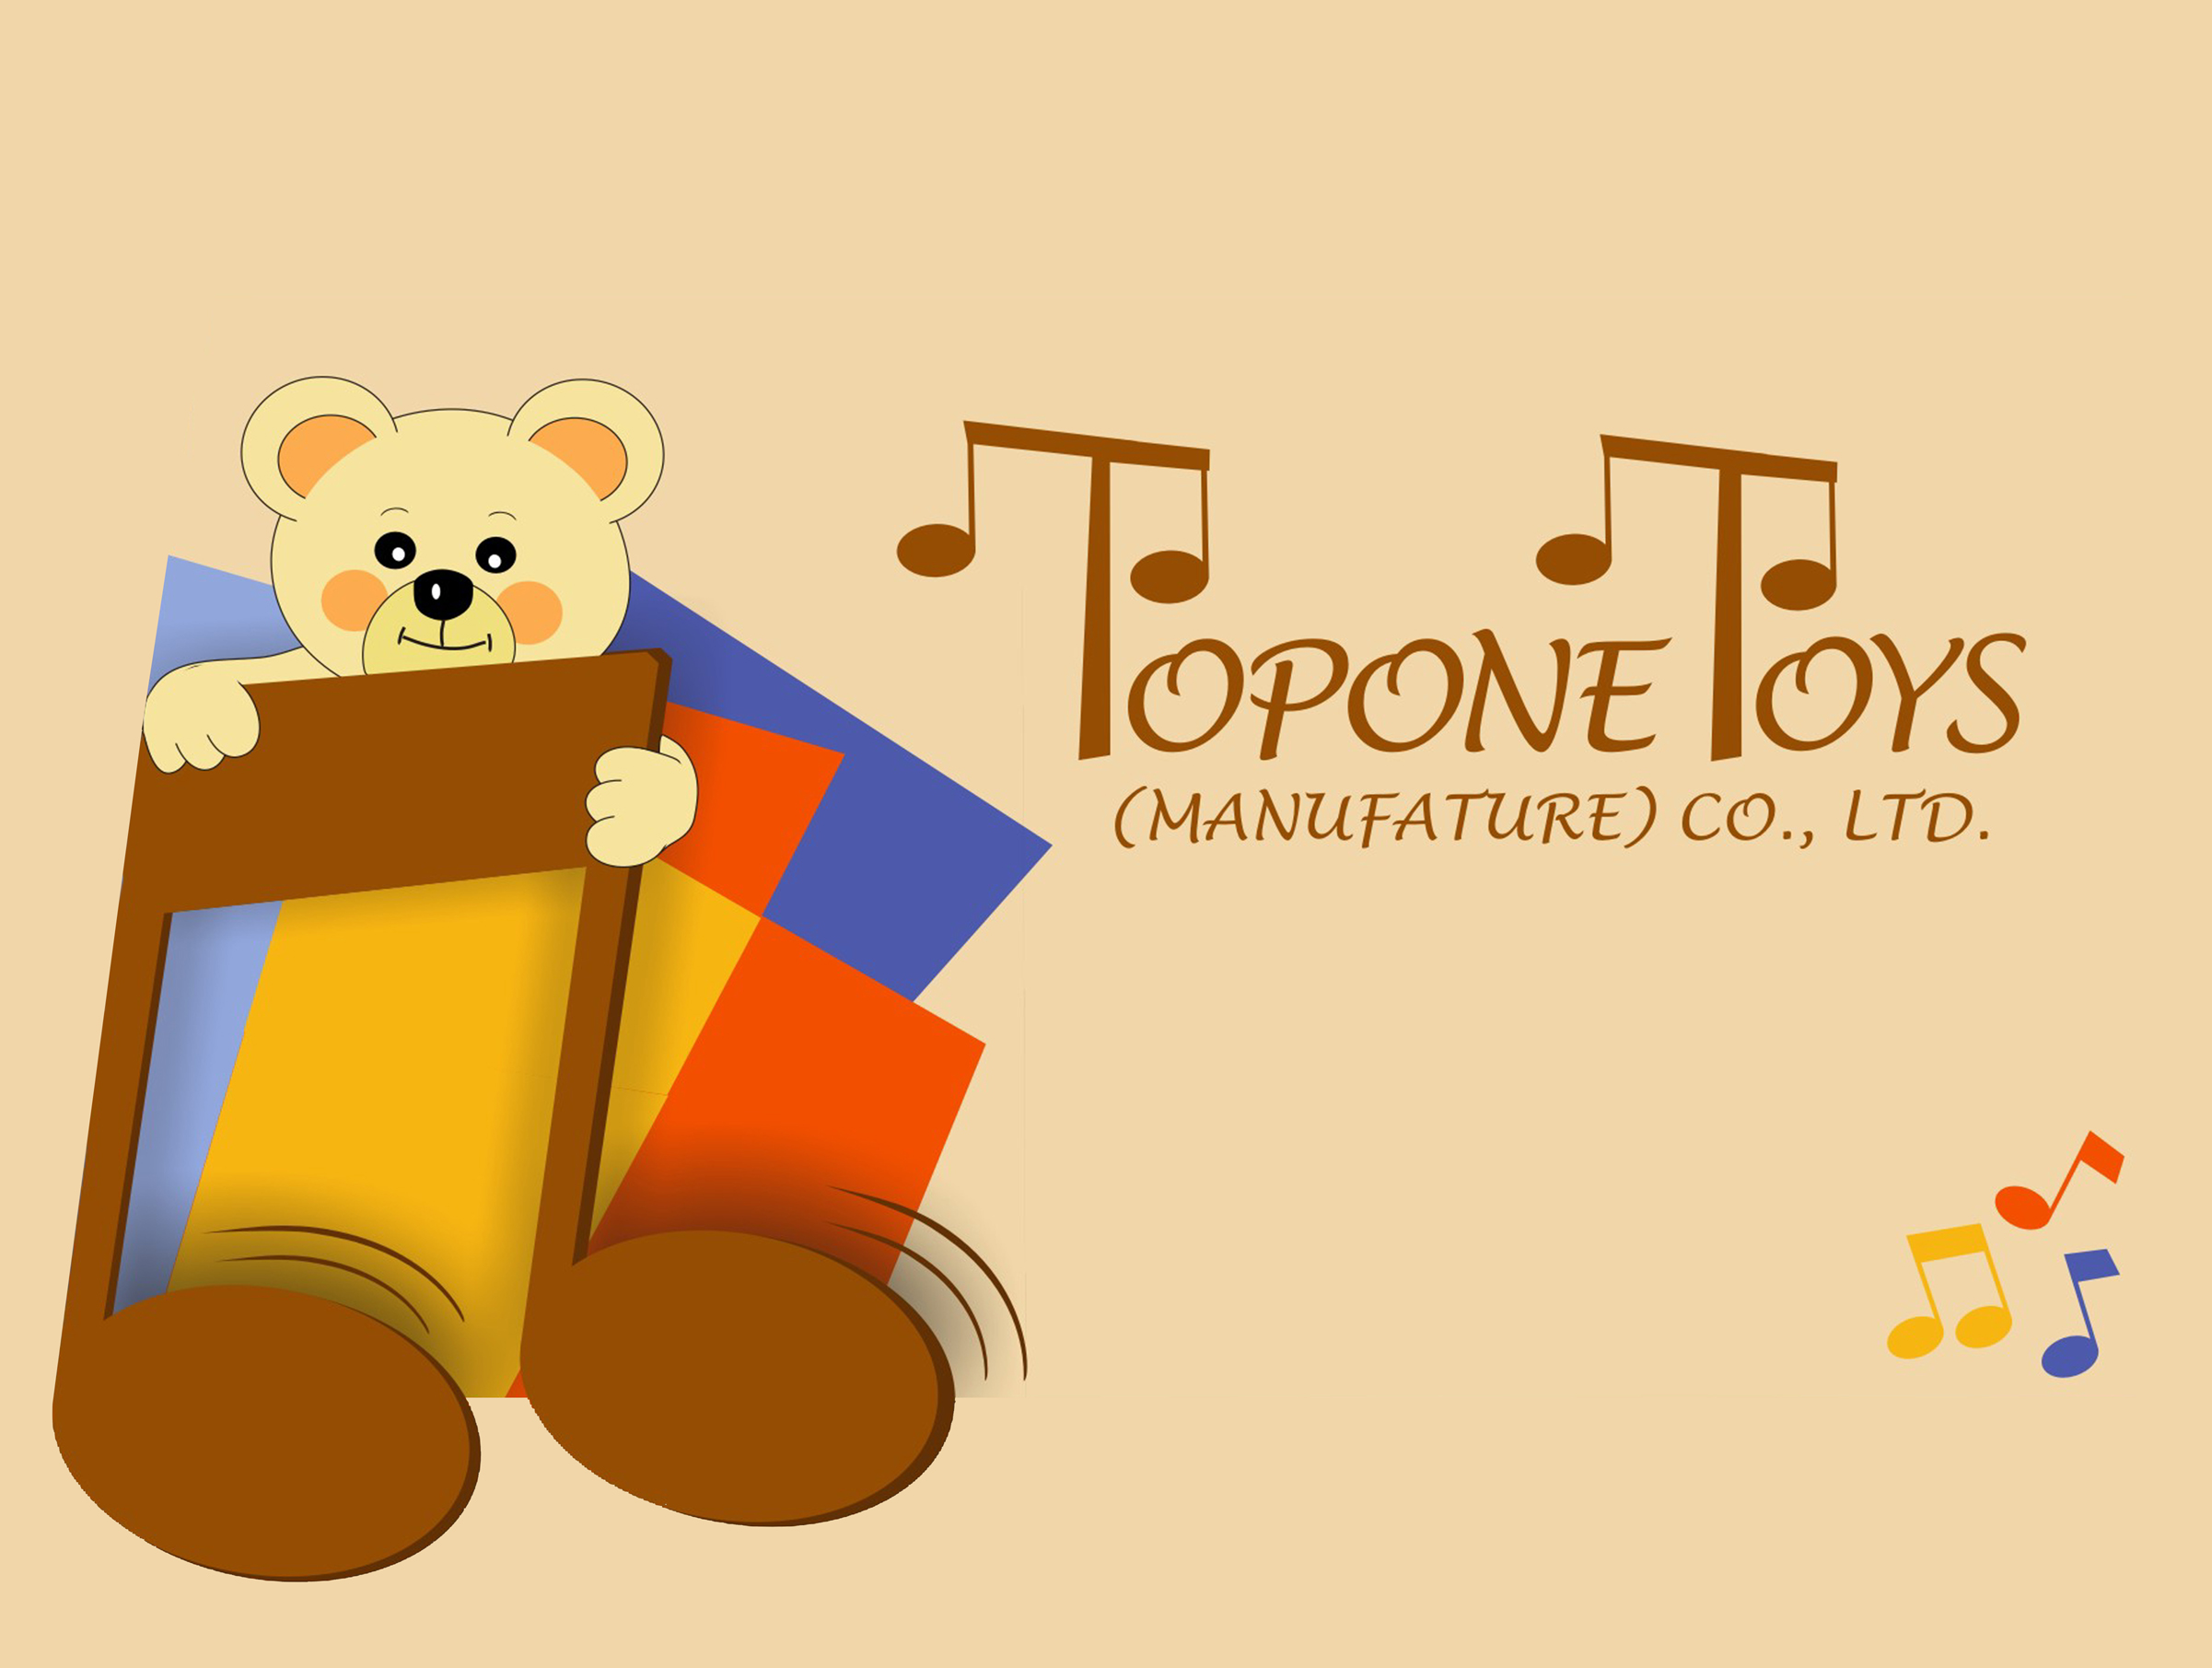 TOPONE TOYS(MANUFACTURE) CO., LTD.